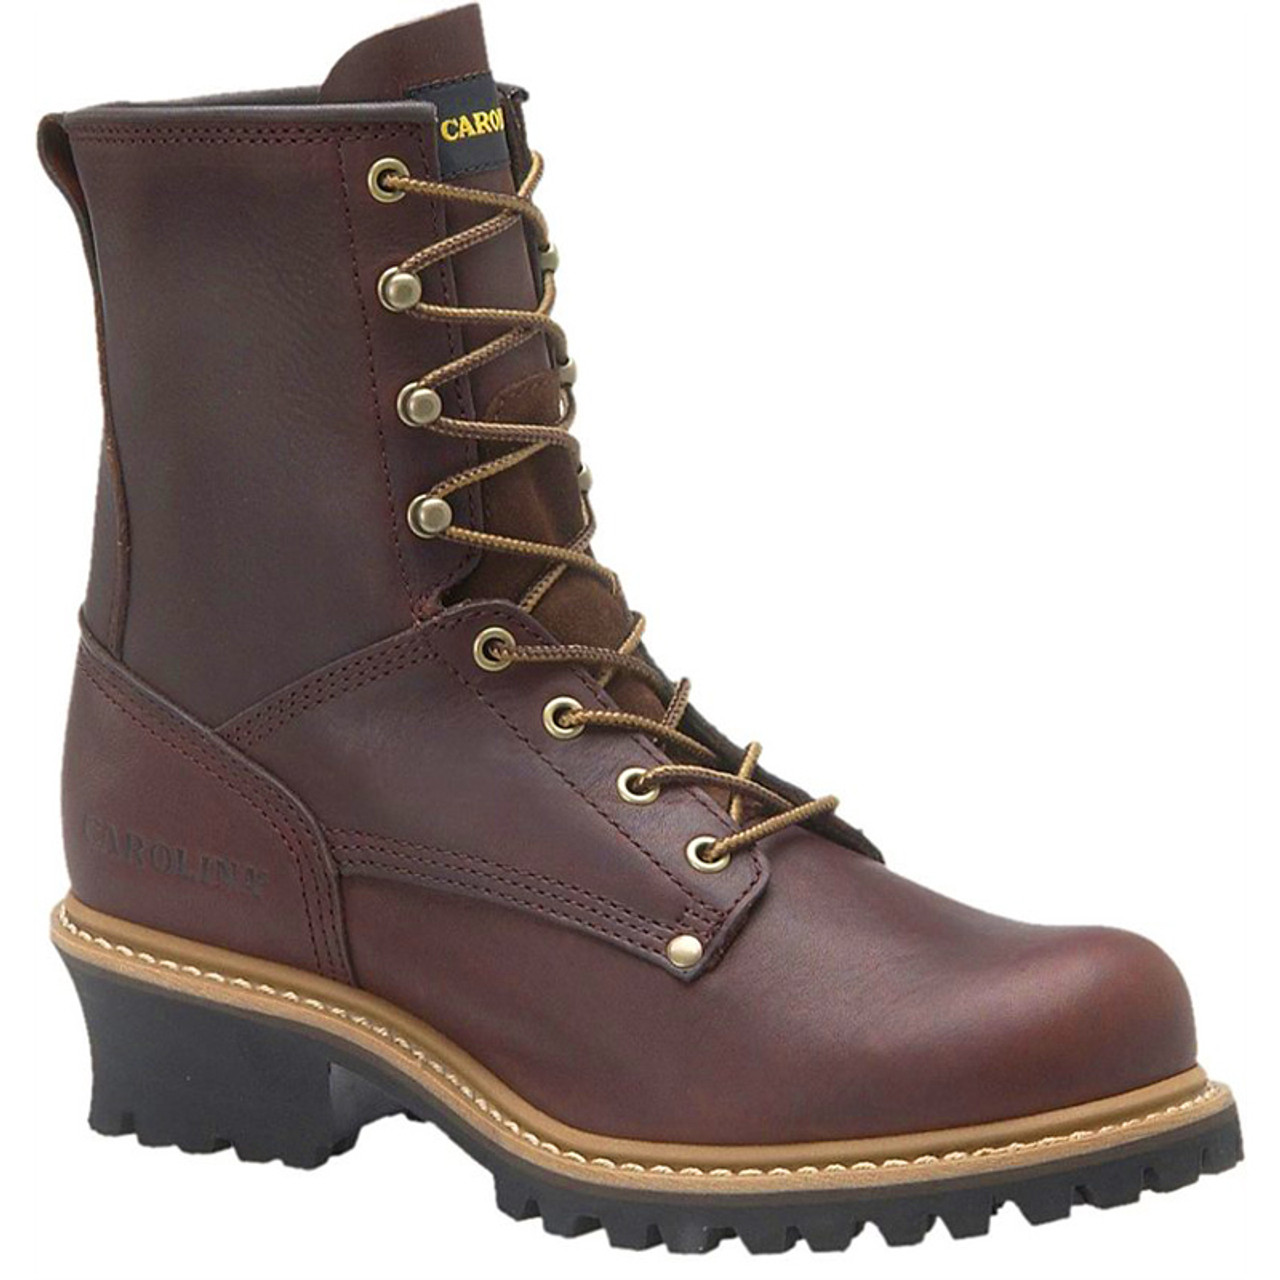 5ac952784c1 Carolina 821 ELM Soft Toe Non-Insulated Logger Boots